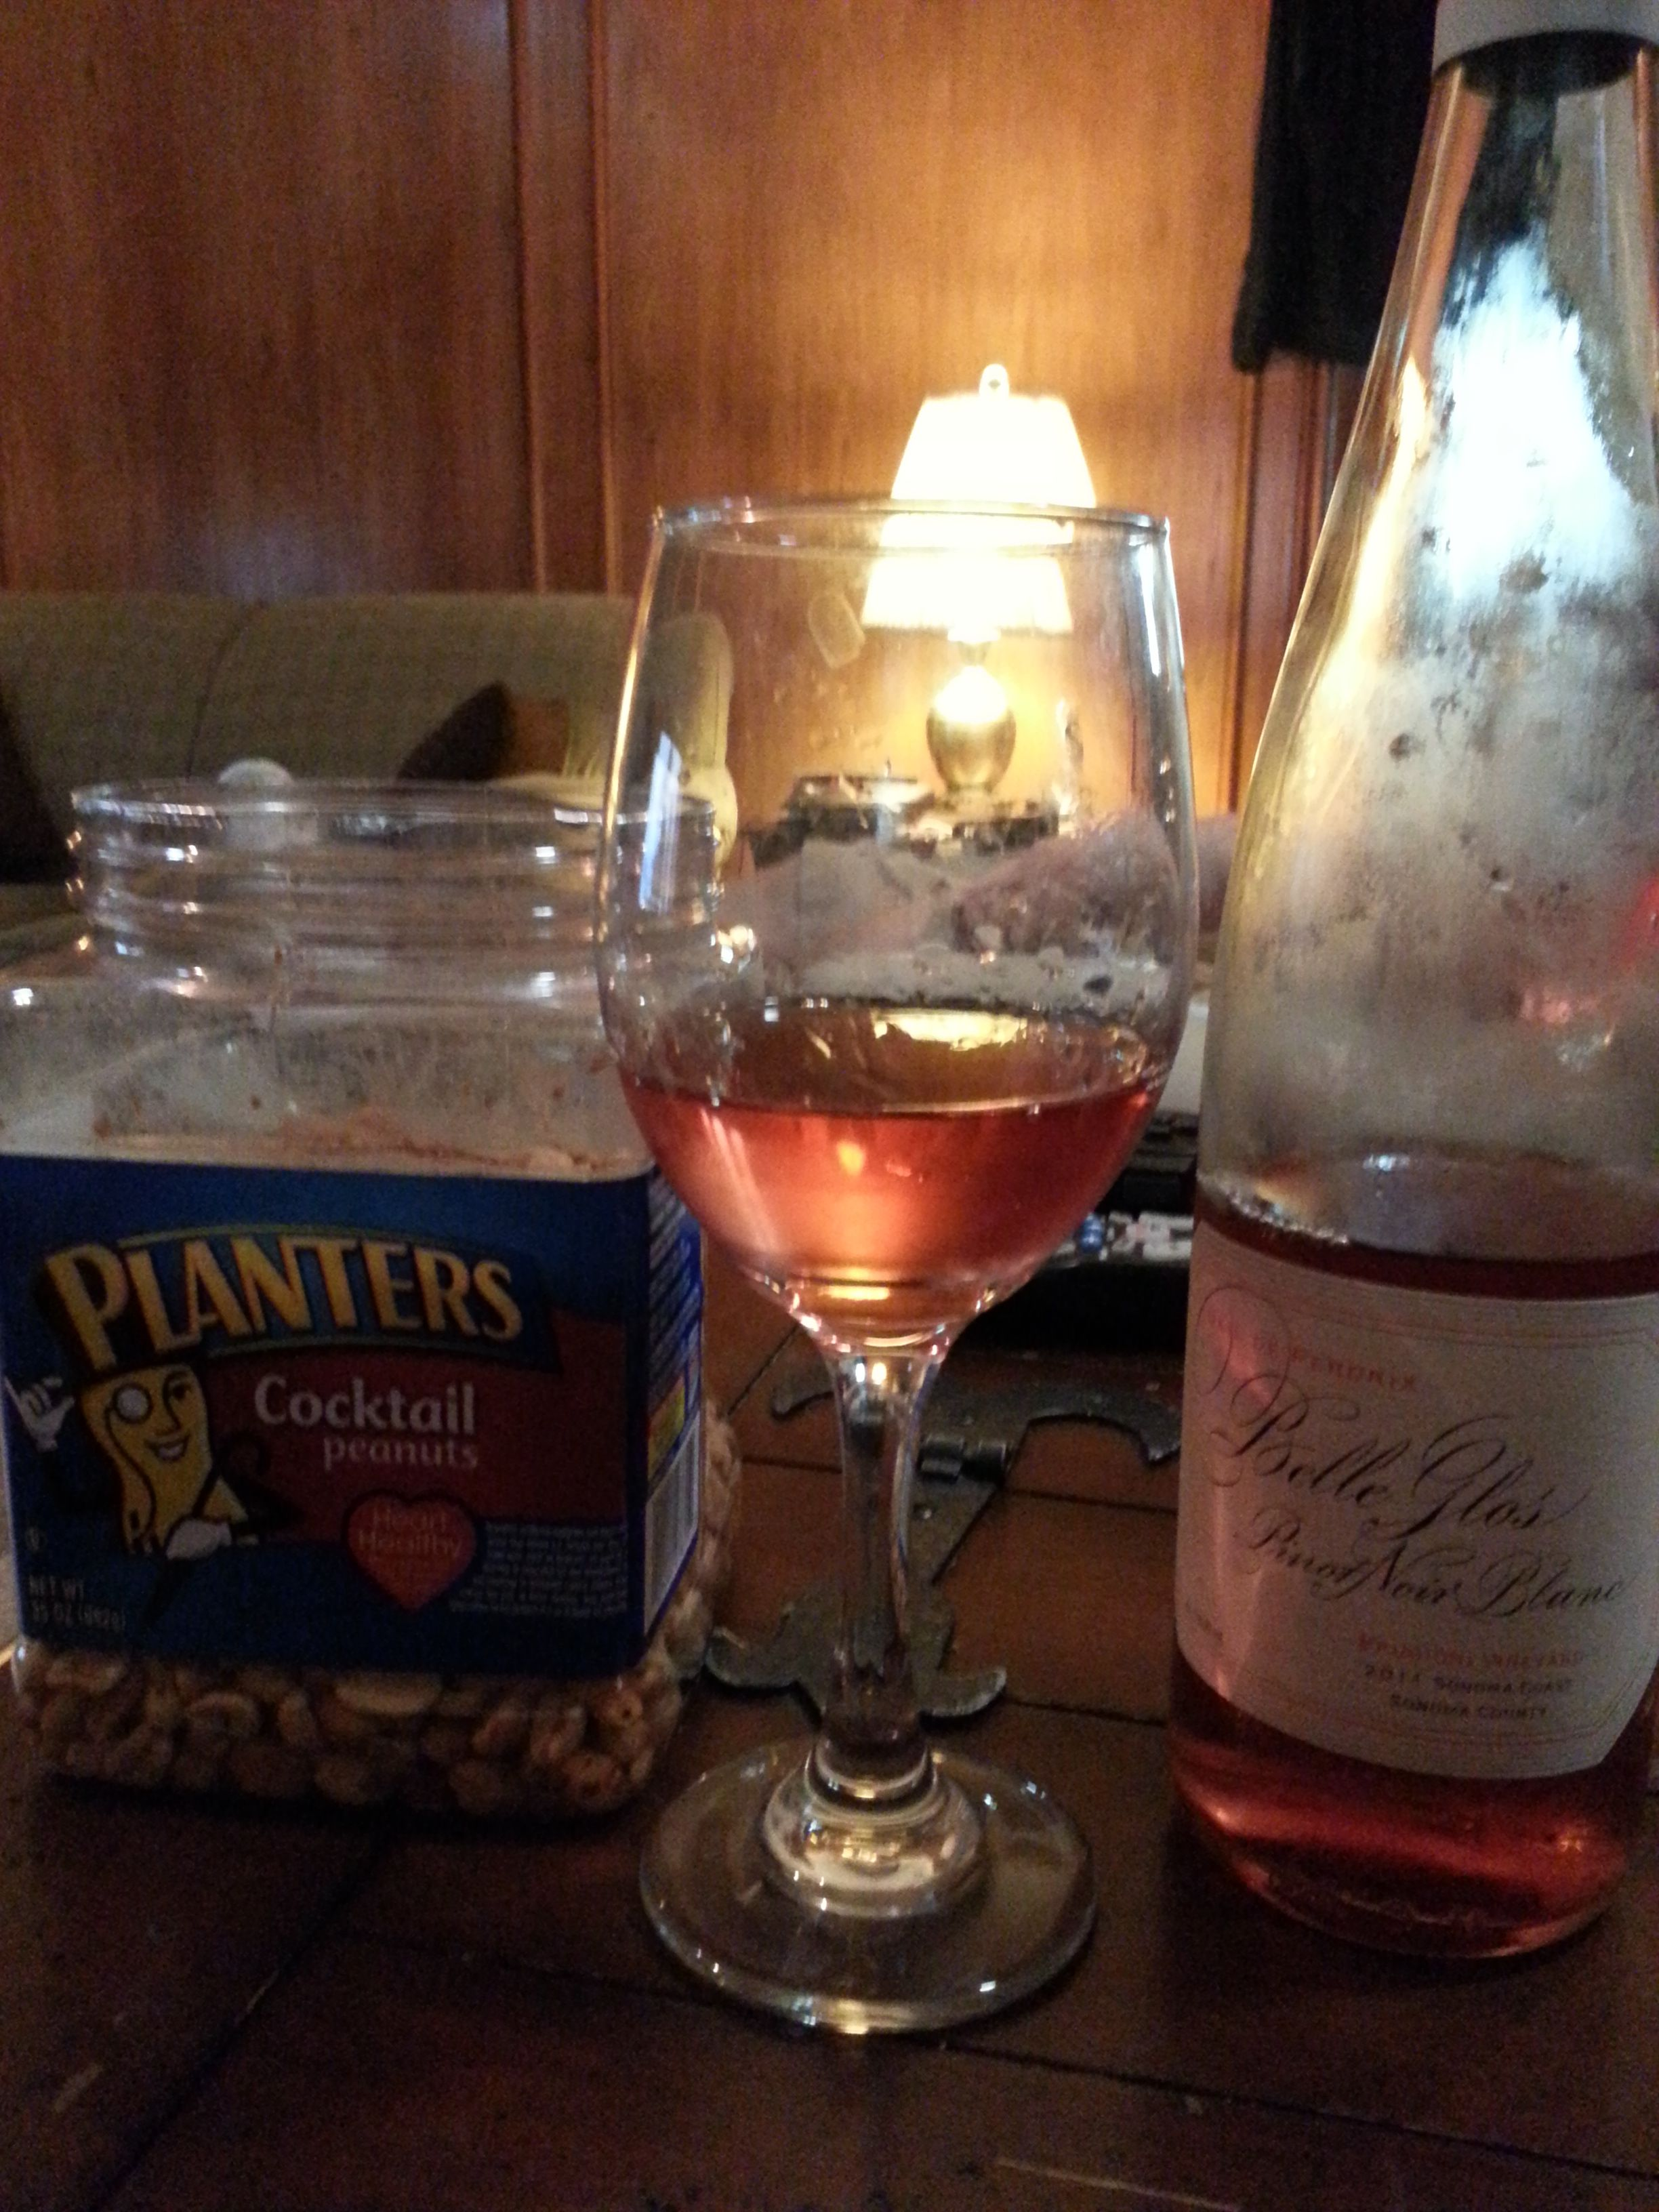 Your favorite Rose' with salted peanuts. Now that's a great pairing!